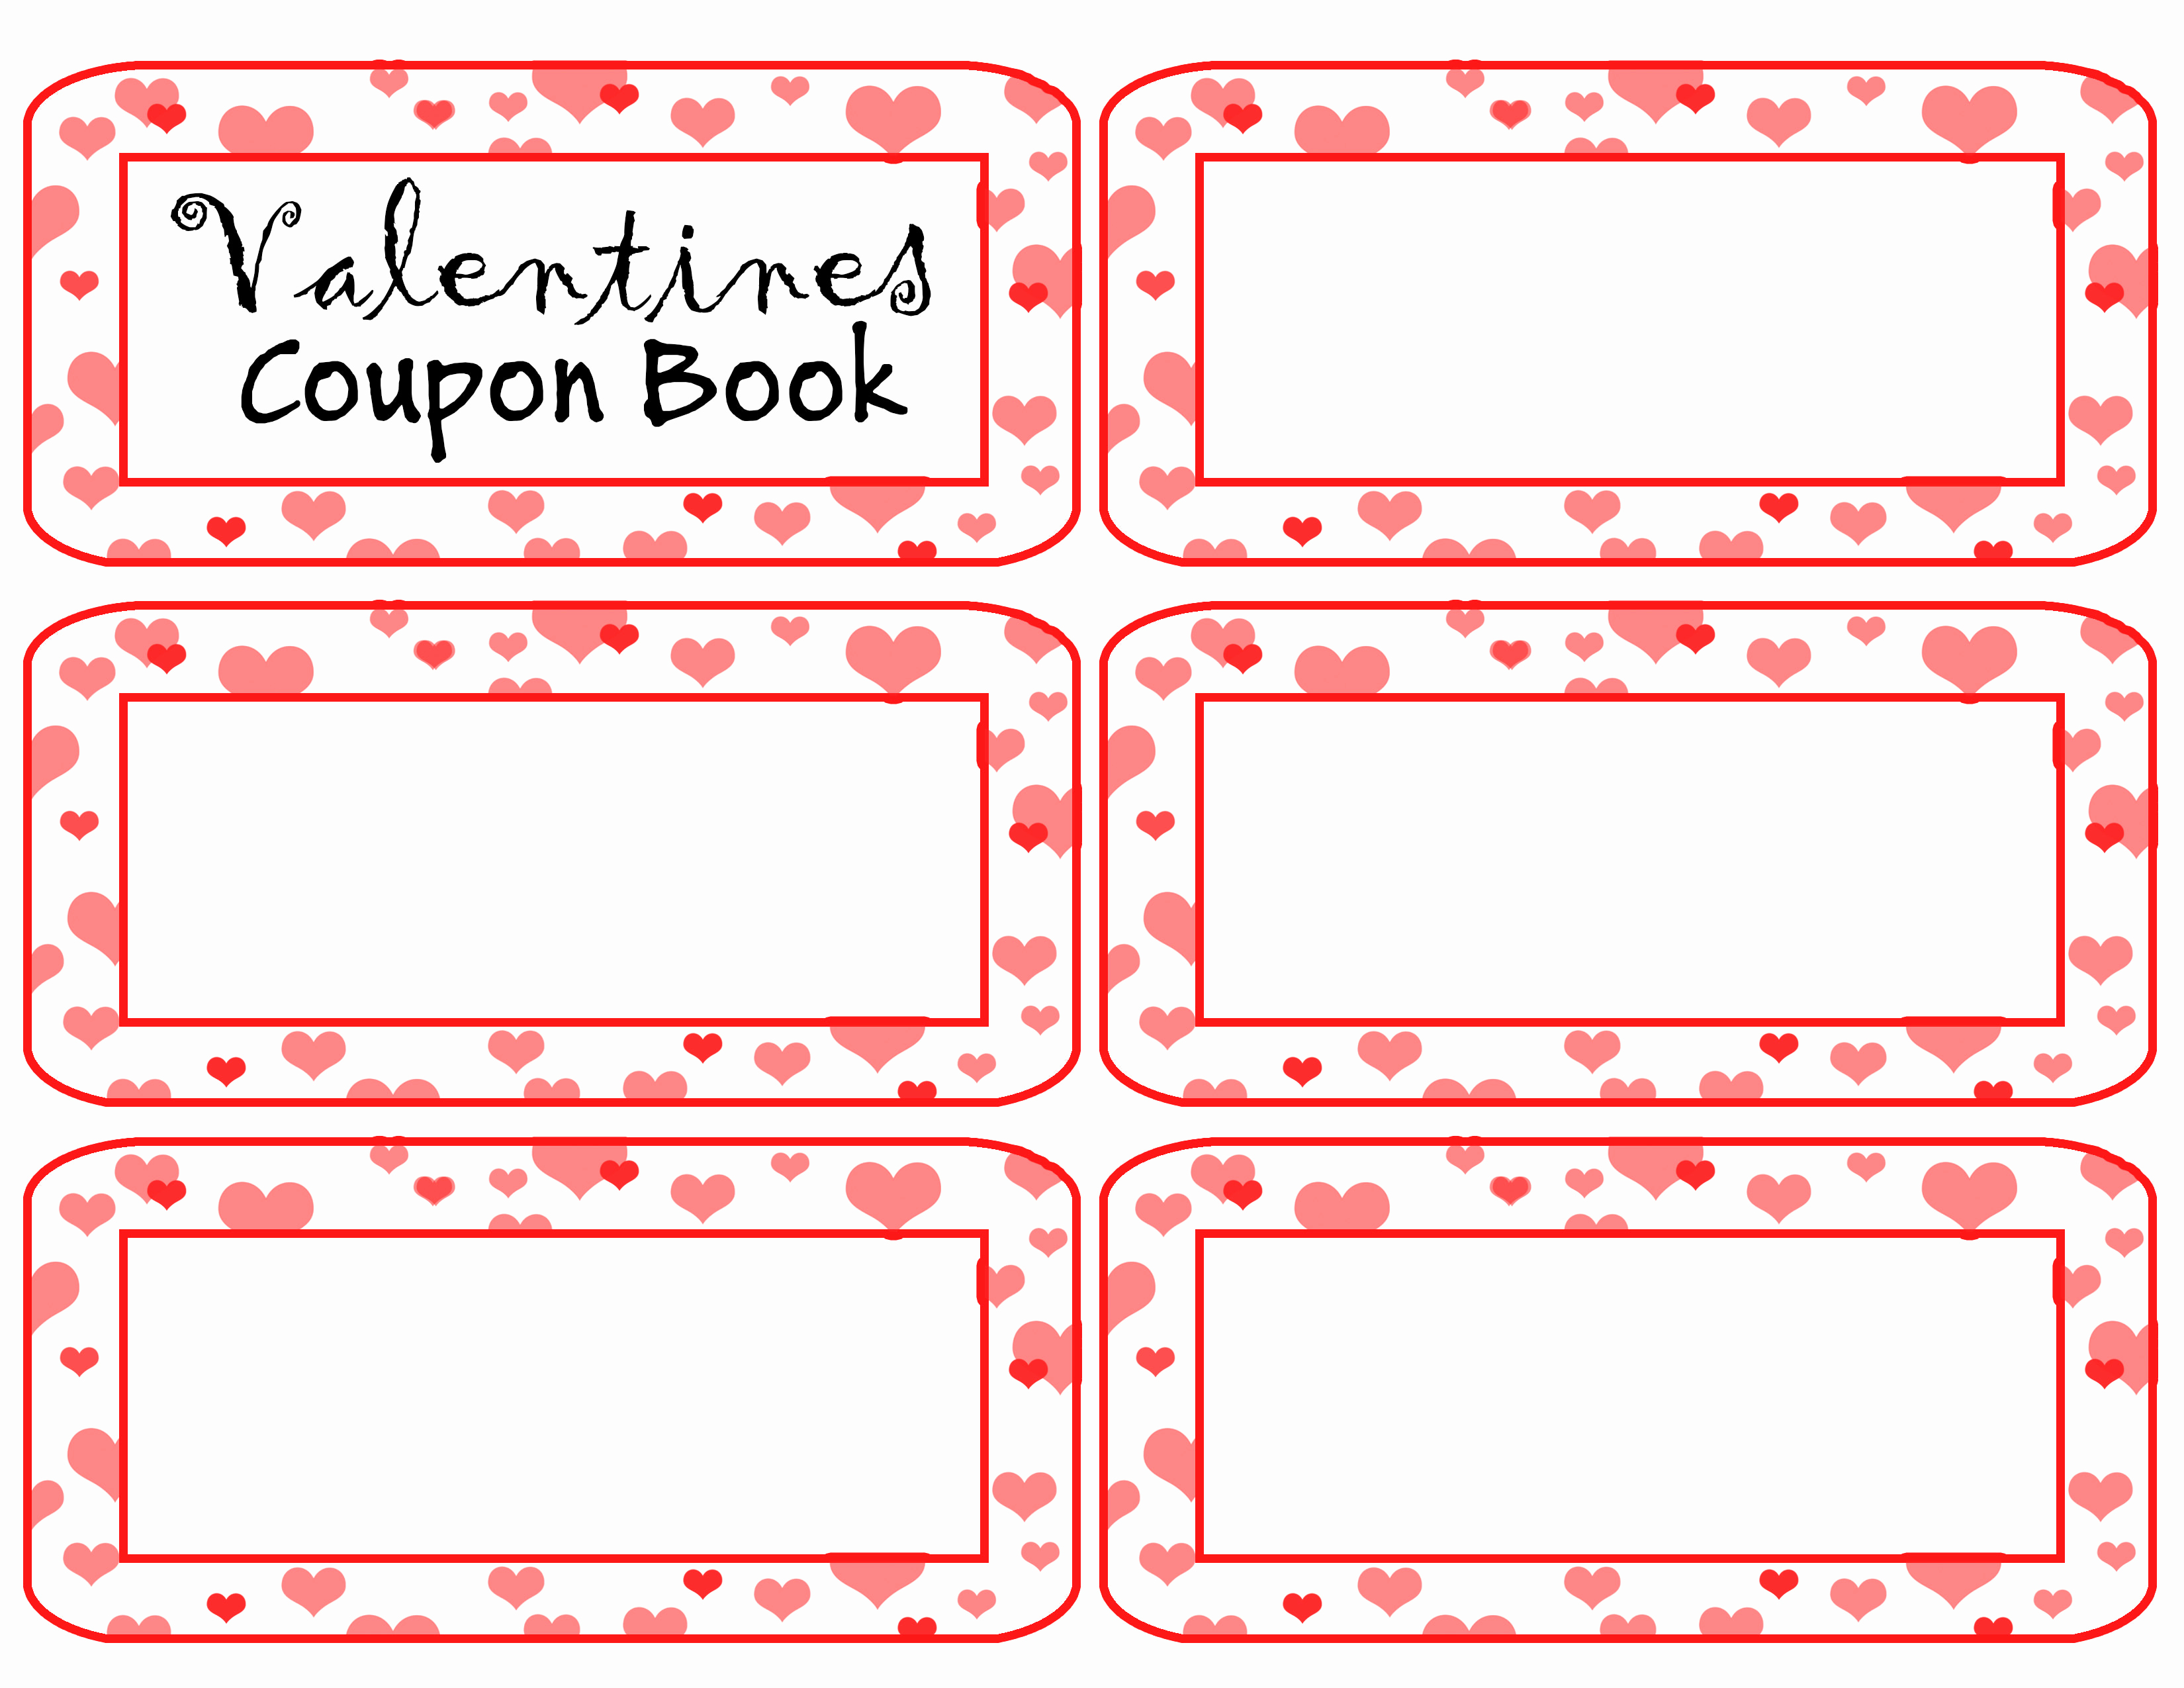 Free Printable Coupon Template Blank New Coupon Book Template